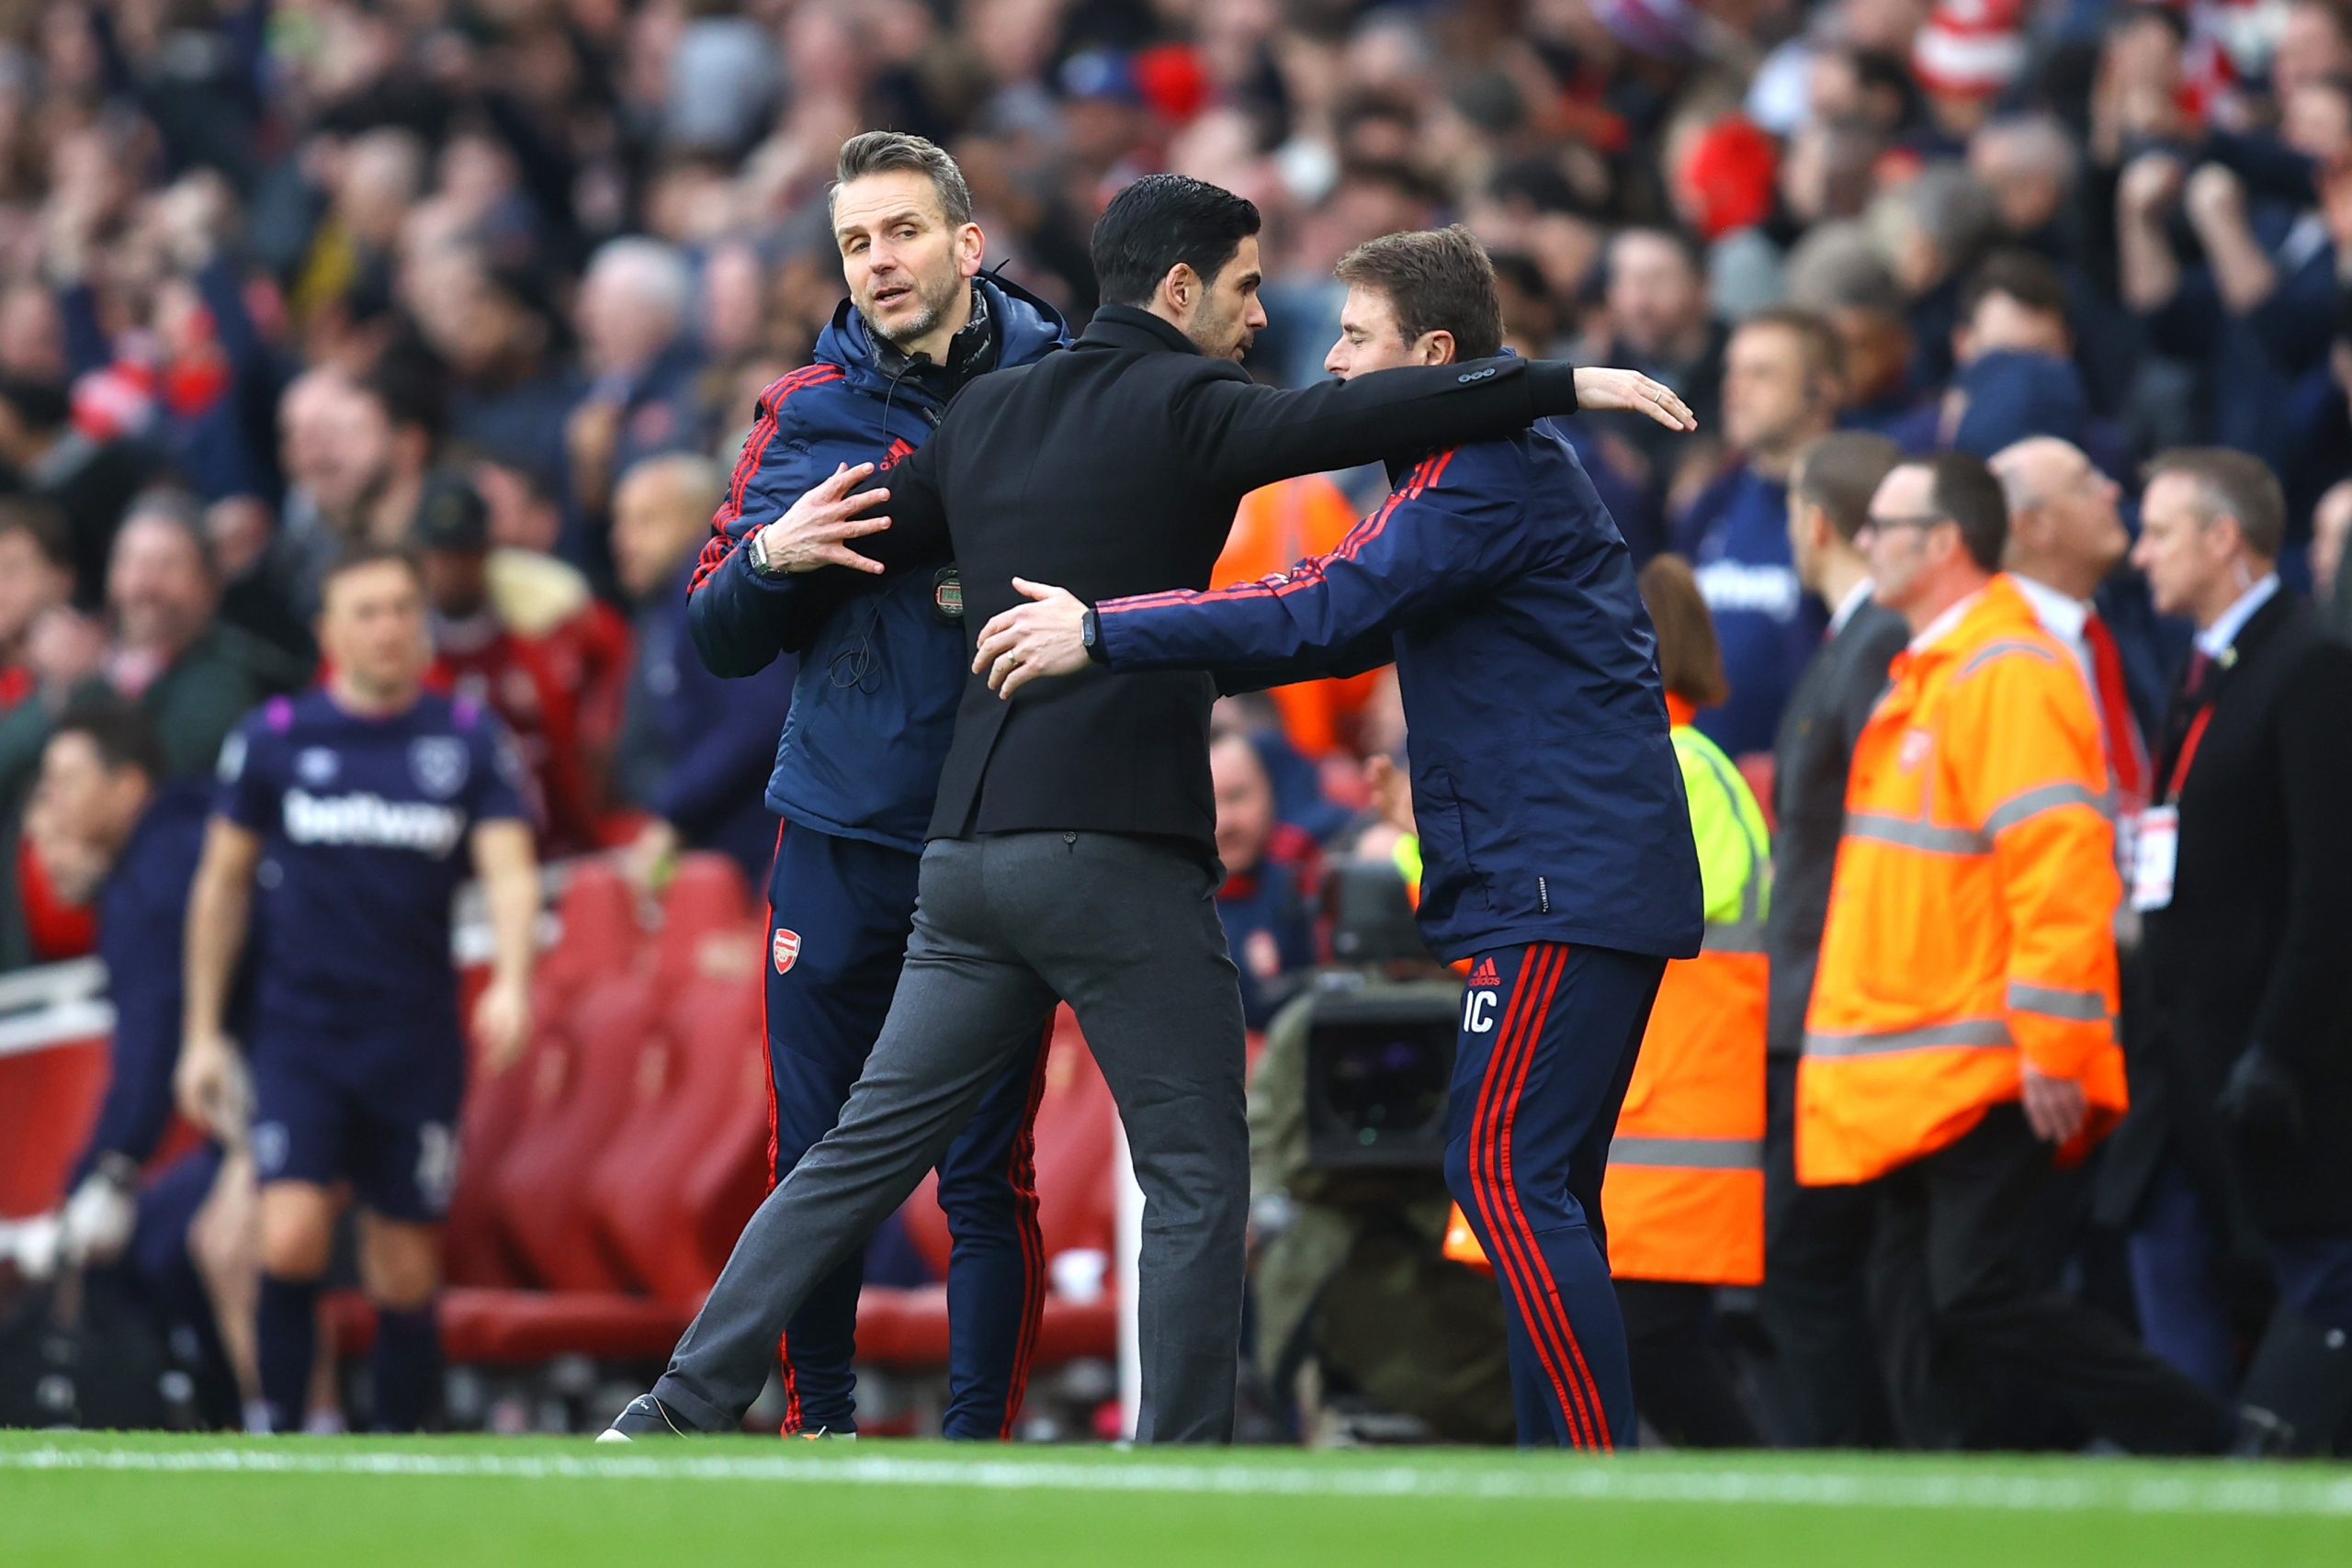 Mikel Arteta, Manager of Arsenal embraces his coaching staff following his sides victory in the Premier League match between Arsenal FC and West Ham United at Emirates Stadium on March 07, 2020 in London, United Kingdom.